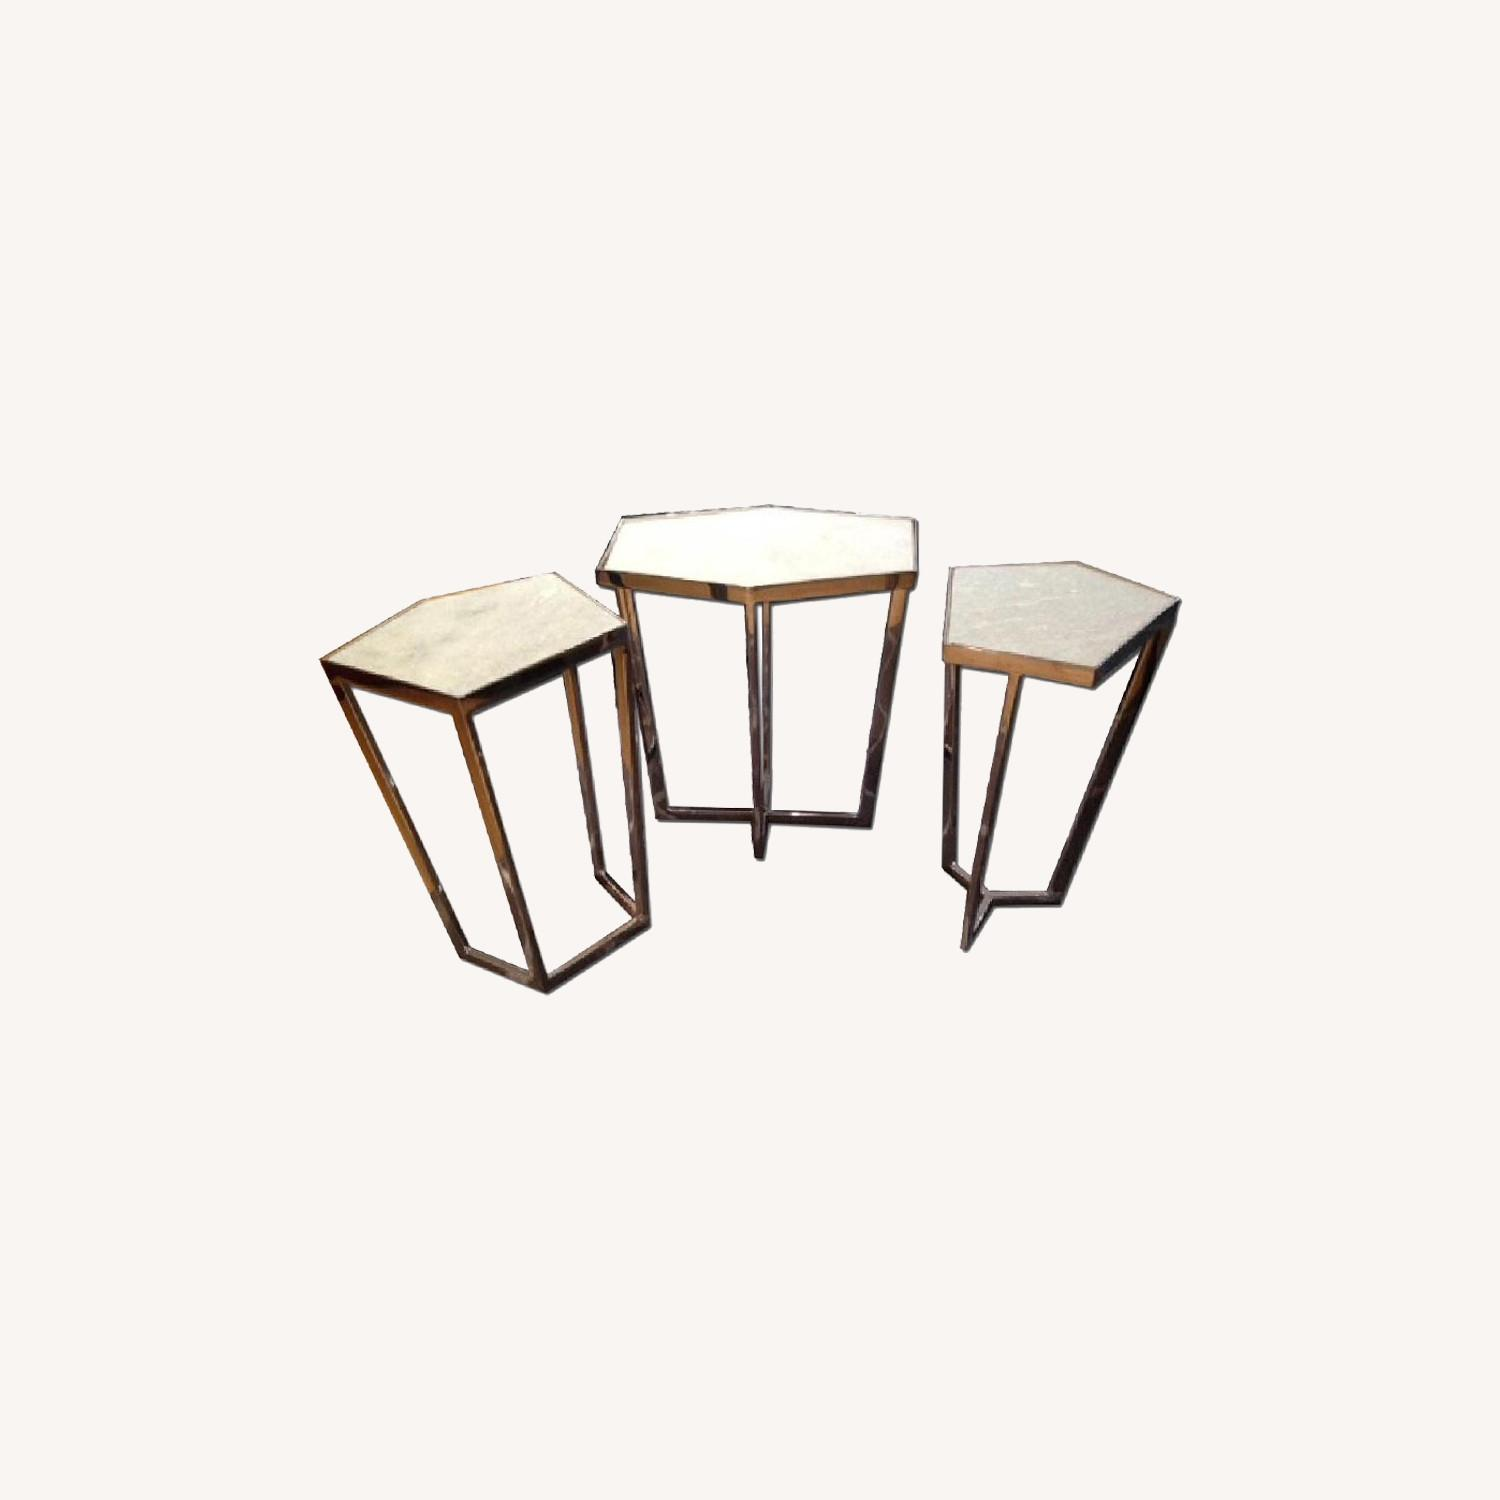 Marble and Chrome End Tables - image-0